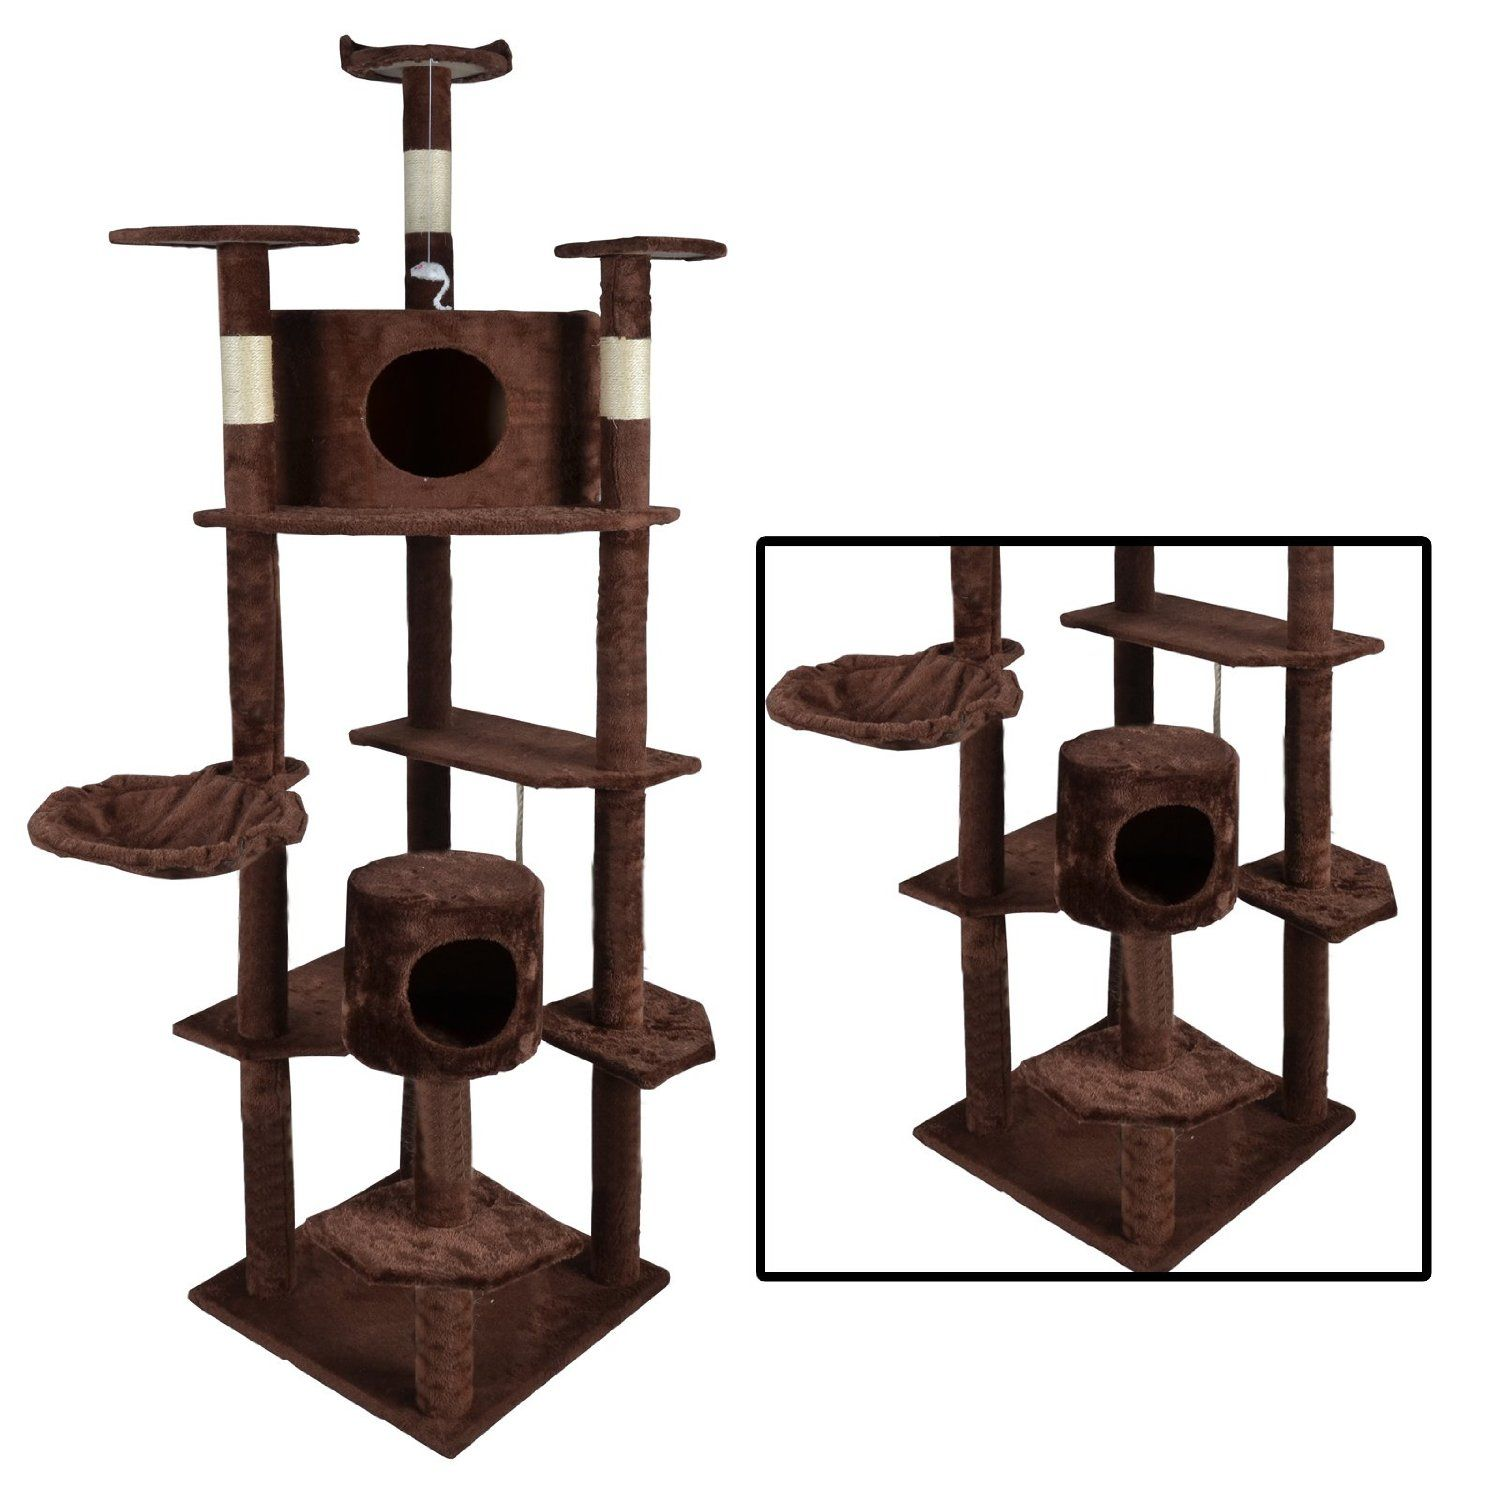 Superior BestPet 2014 Cat Tree Condo Furniture Scratch Post Pet House, Brown, 80 Inch